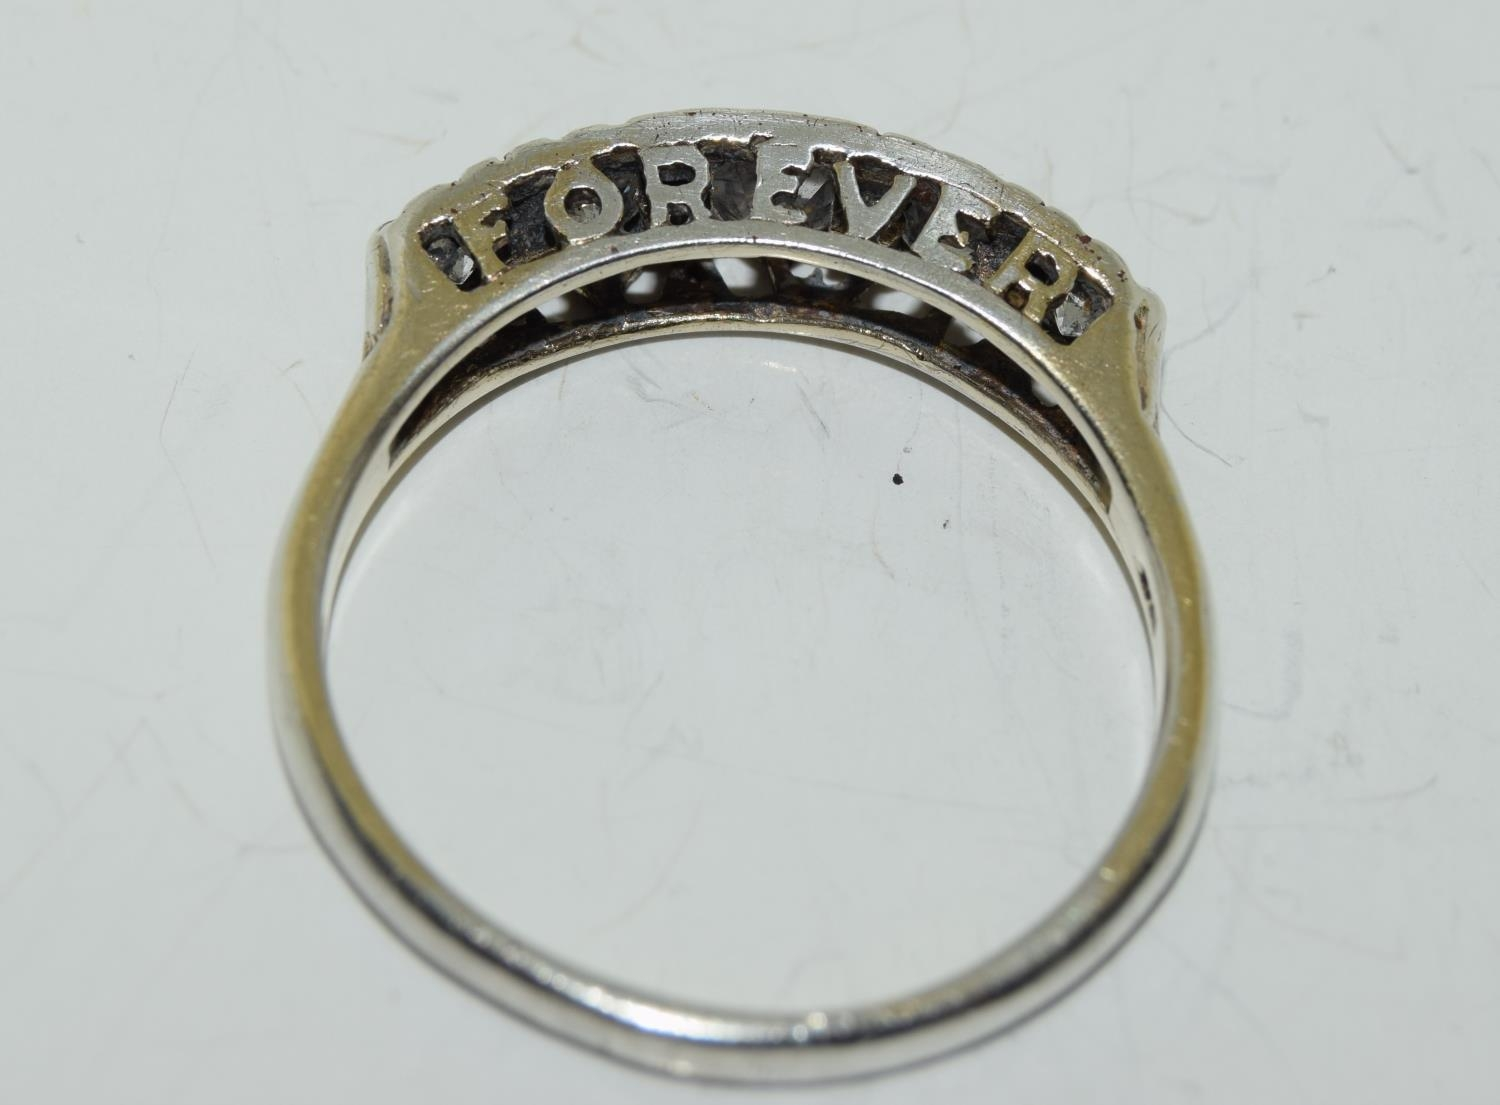 Large 'Always Forever' CZ 925 silver ring, Size W. - Image 4 of 4